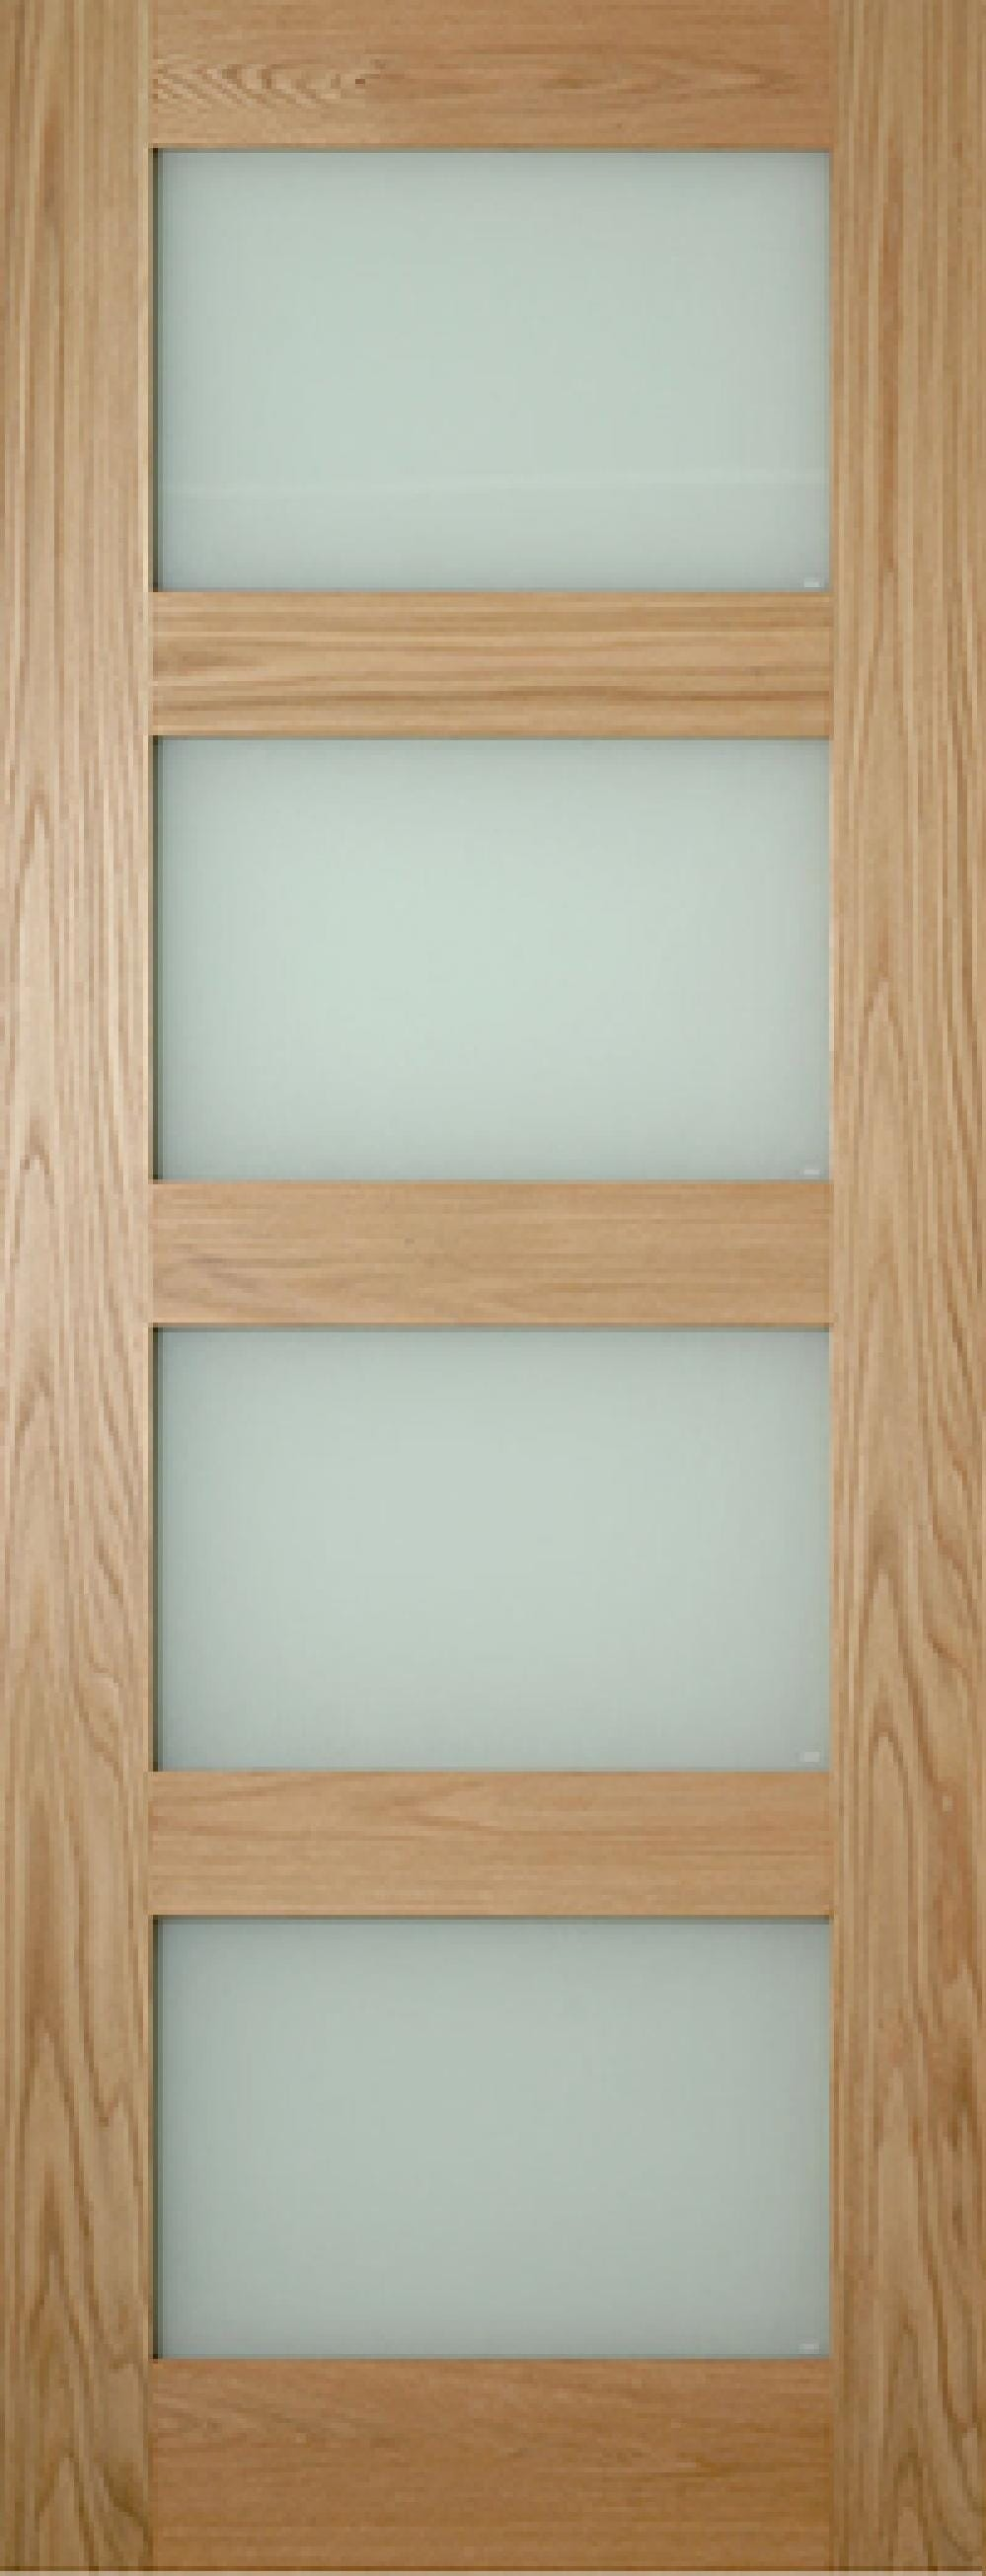 Coventry Glazed Oak Shaker - Frosted Glass Image